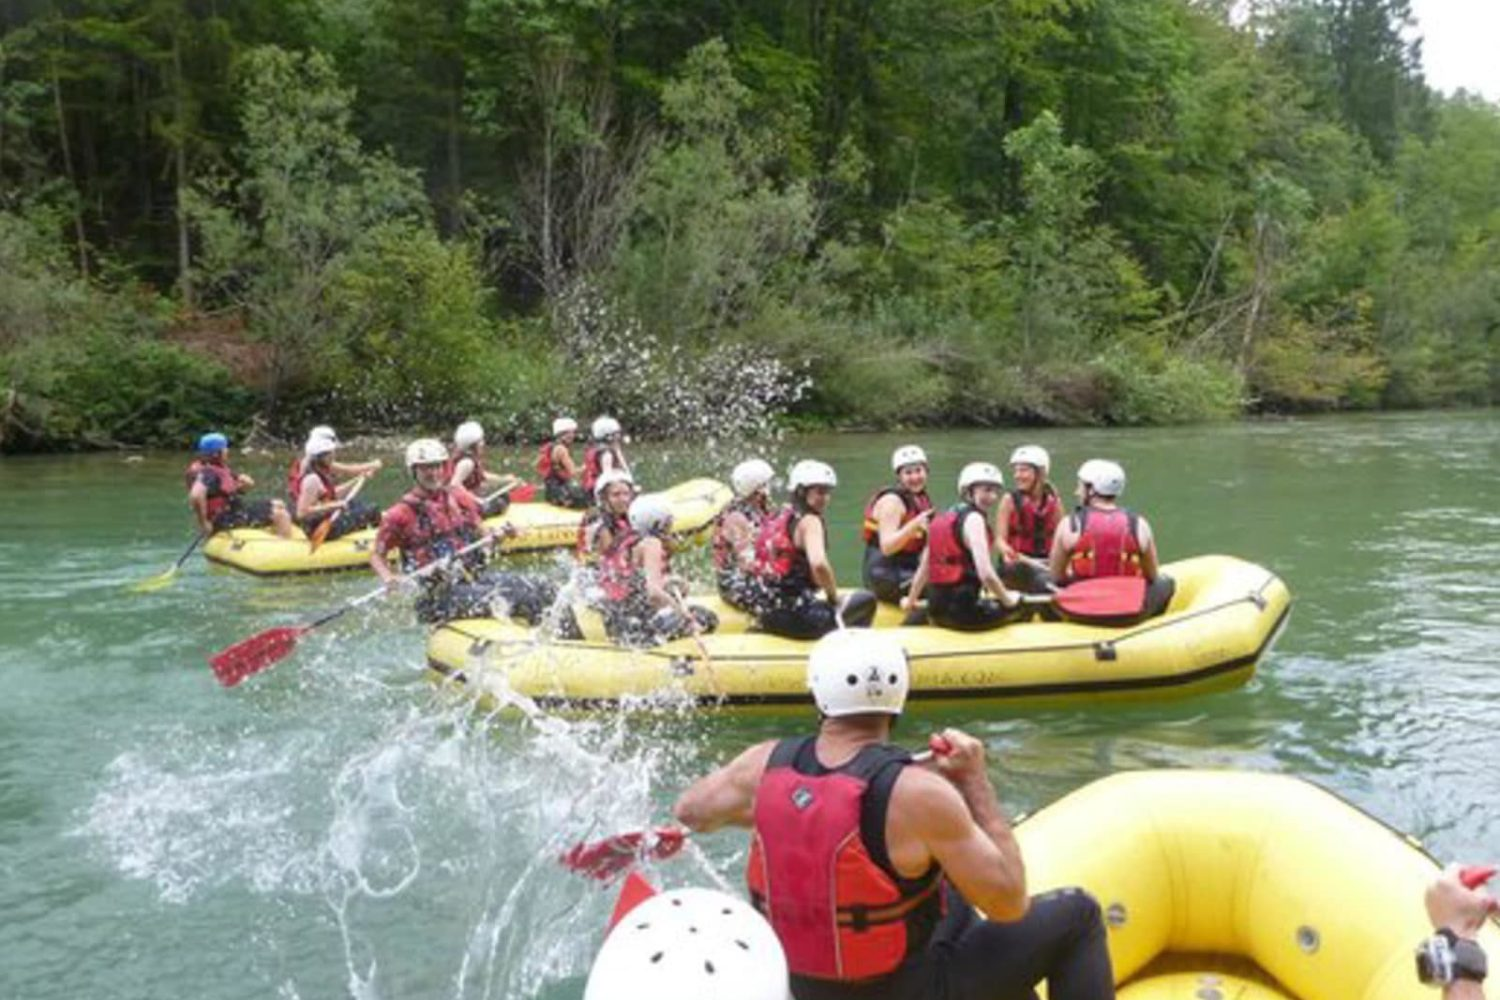 Family rafting in Bled